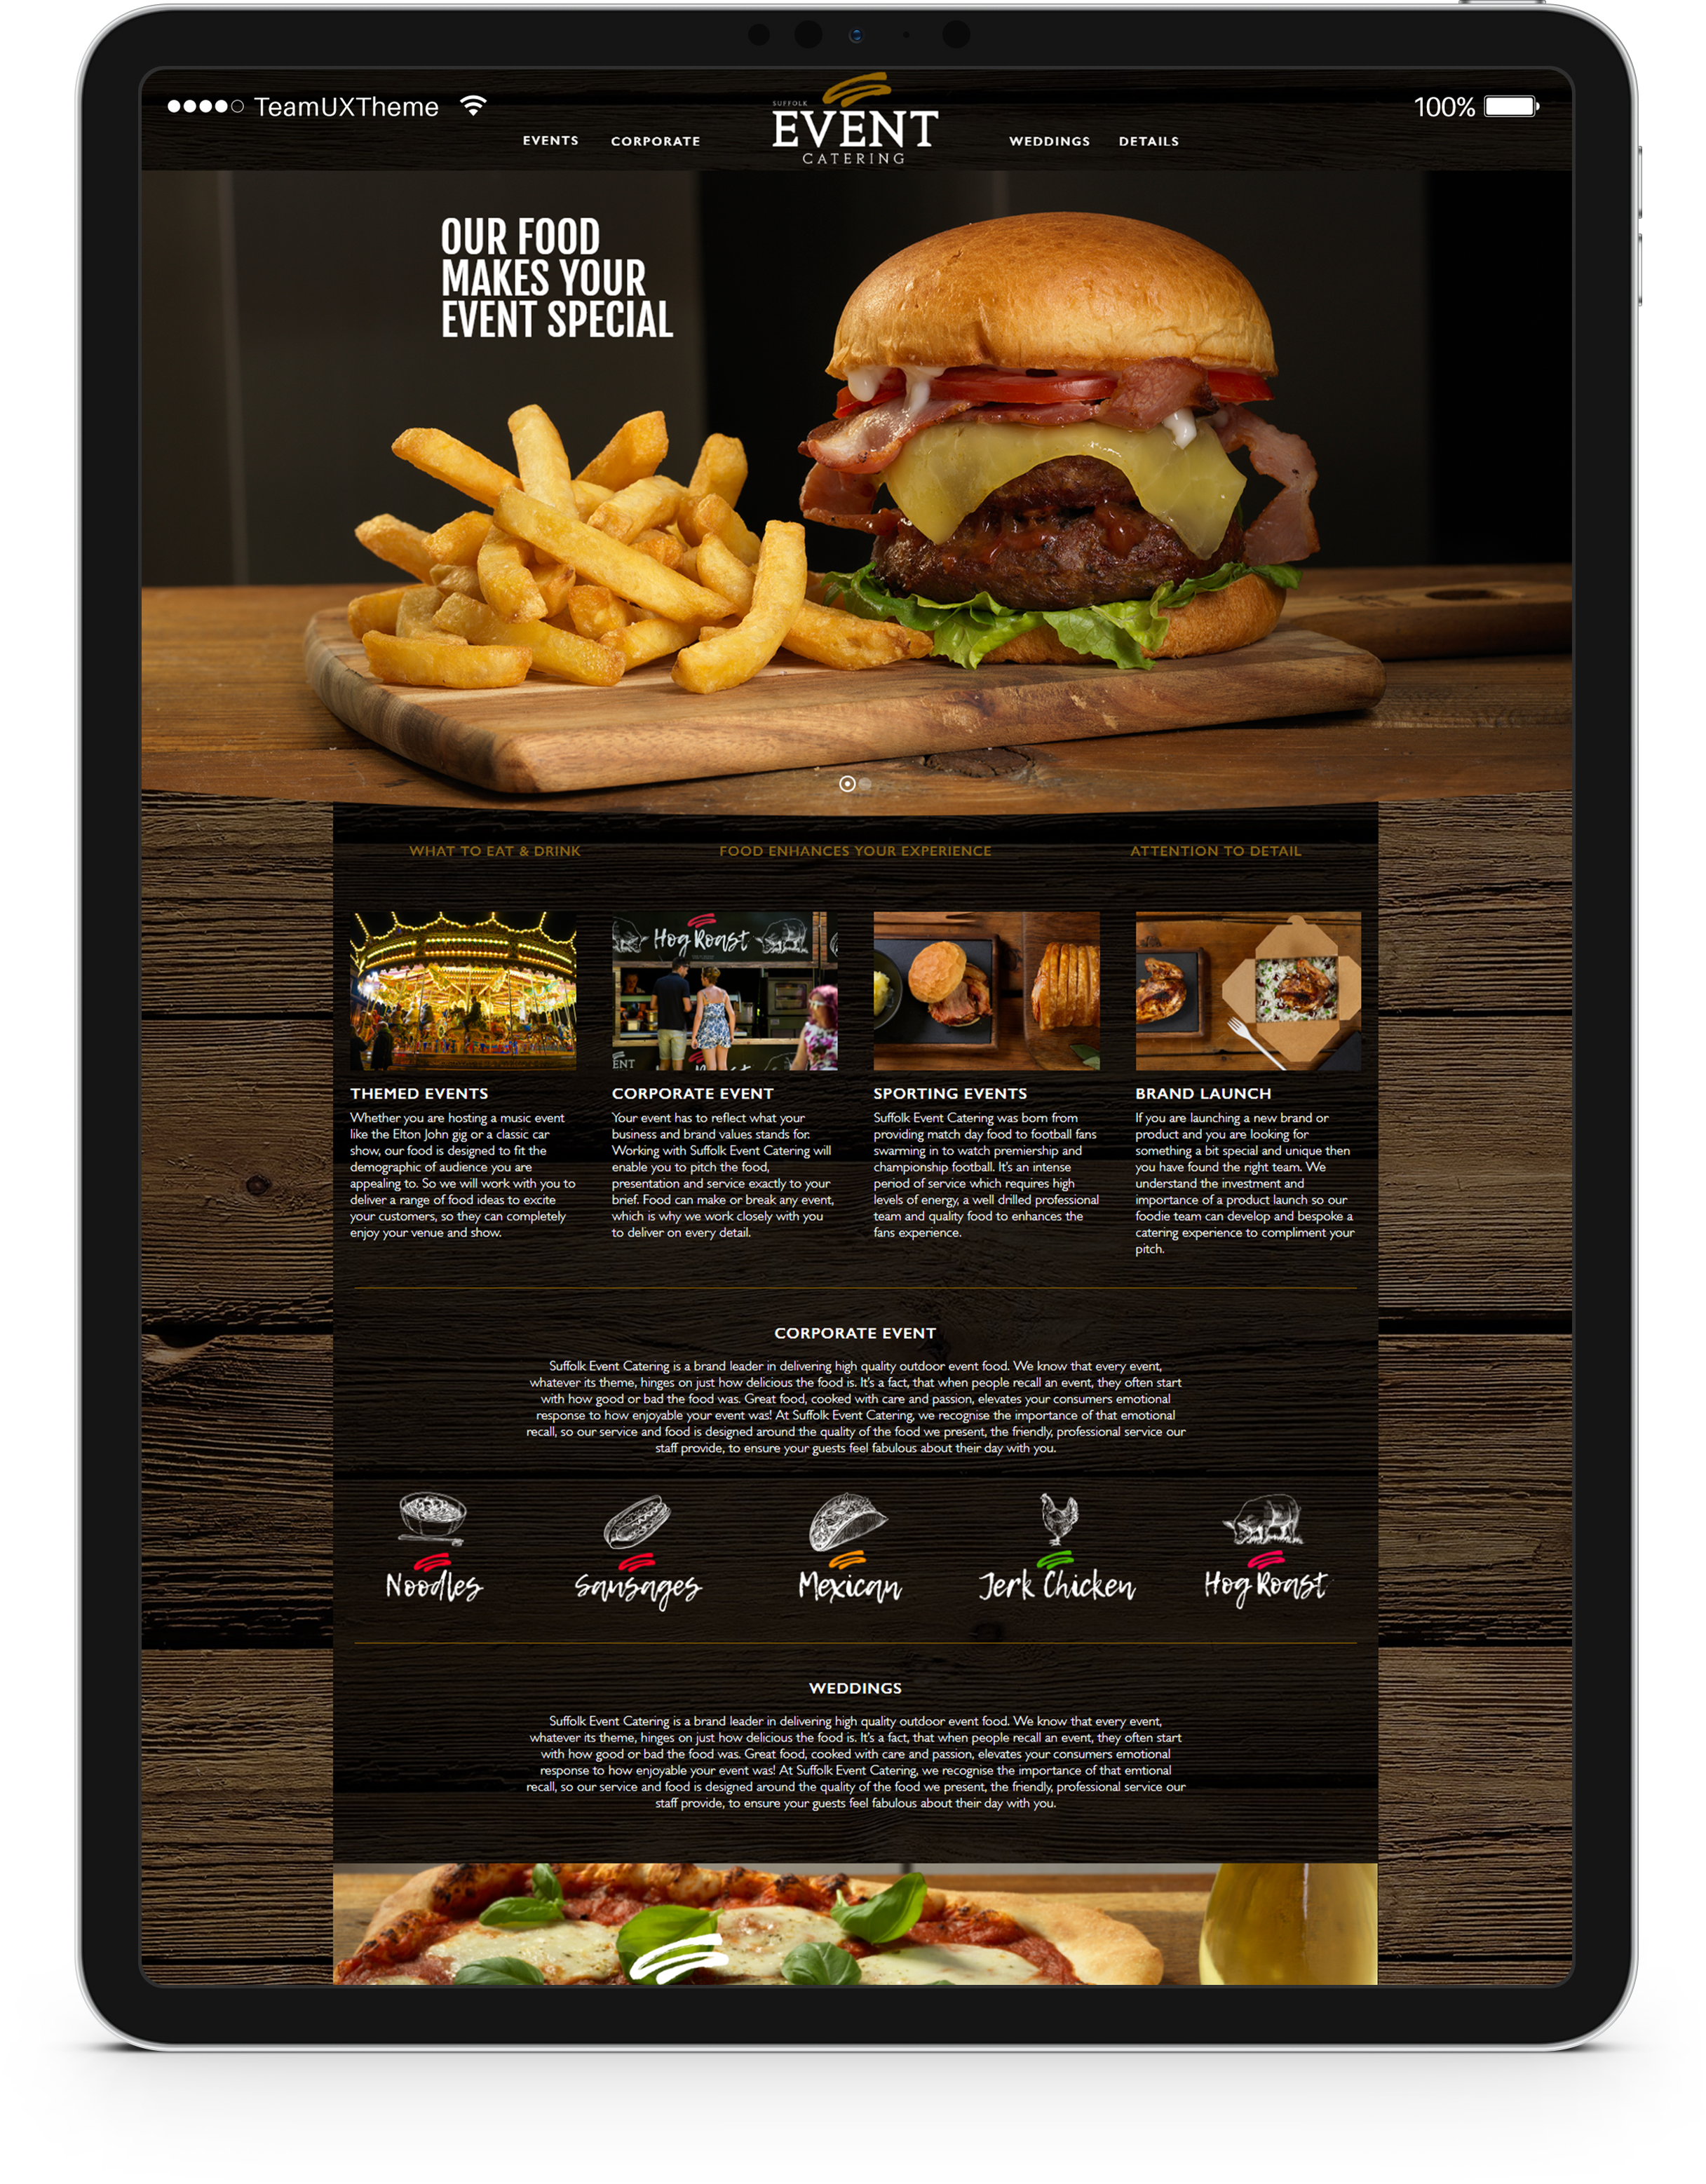 Suffolk Event Catering Website Design on an iPad